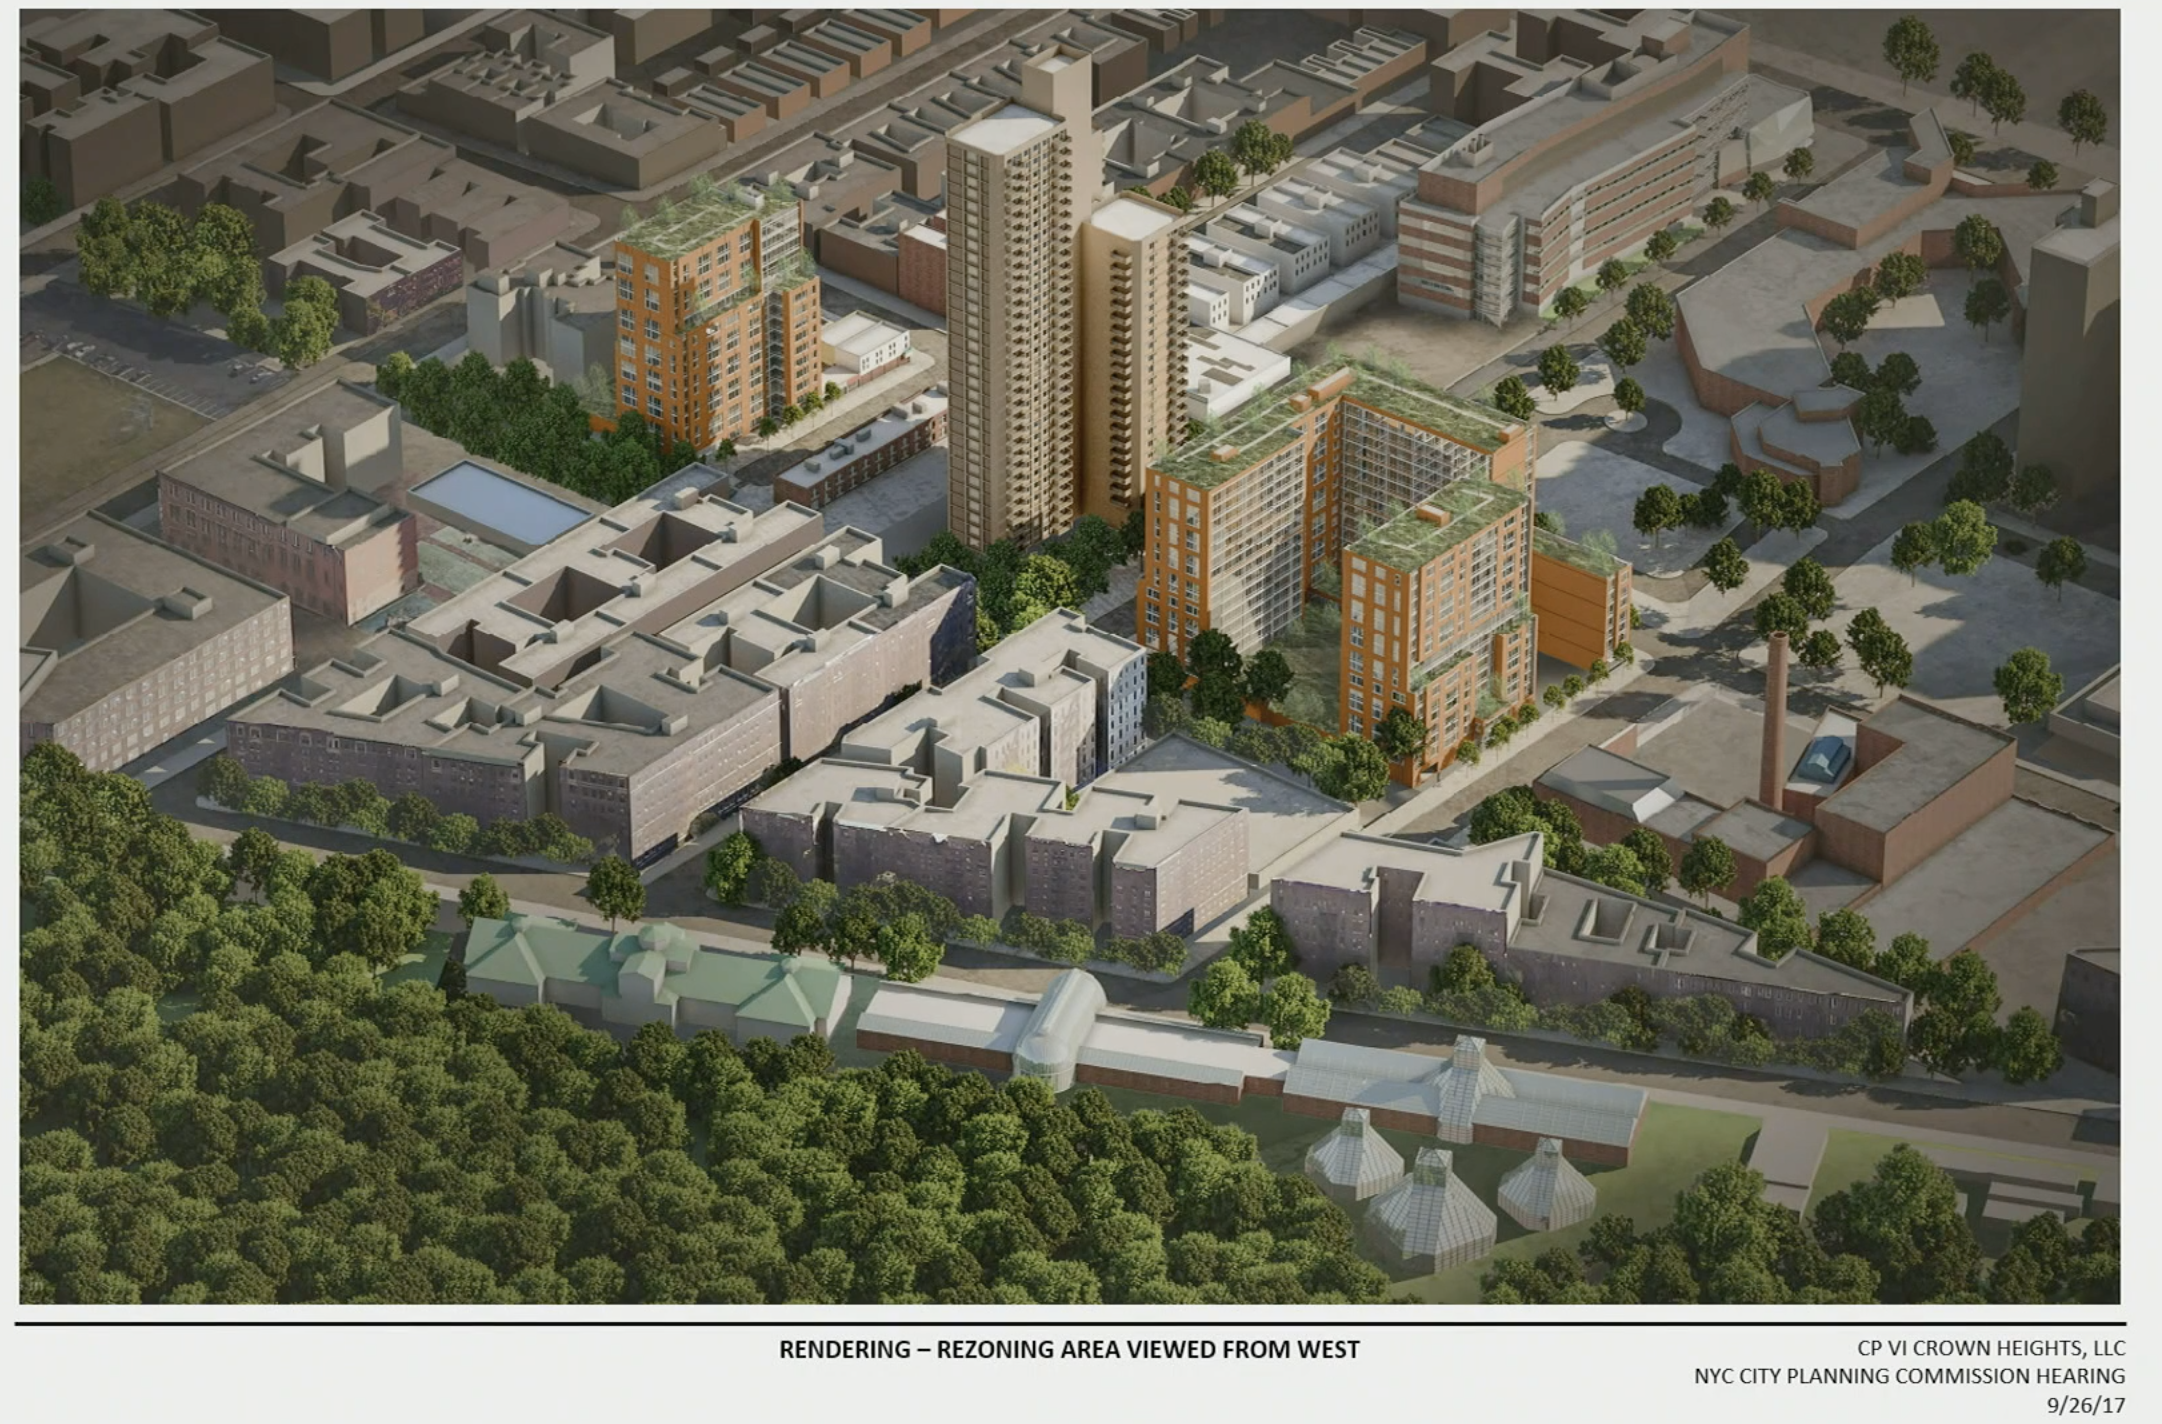 Renderings used in a presentation for Franklin Avenue Rezoning on 09/26/2018. The Lincoln/Continuum site of the old Spice Factory is to the bottom right with the tall chimney stack.